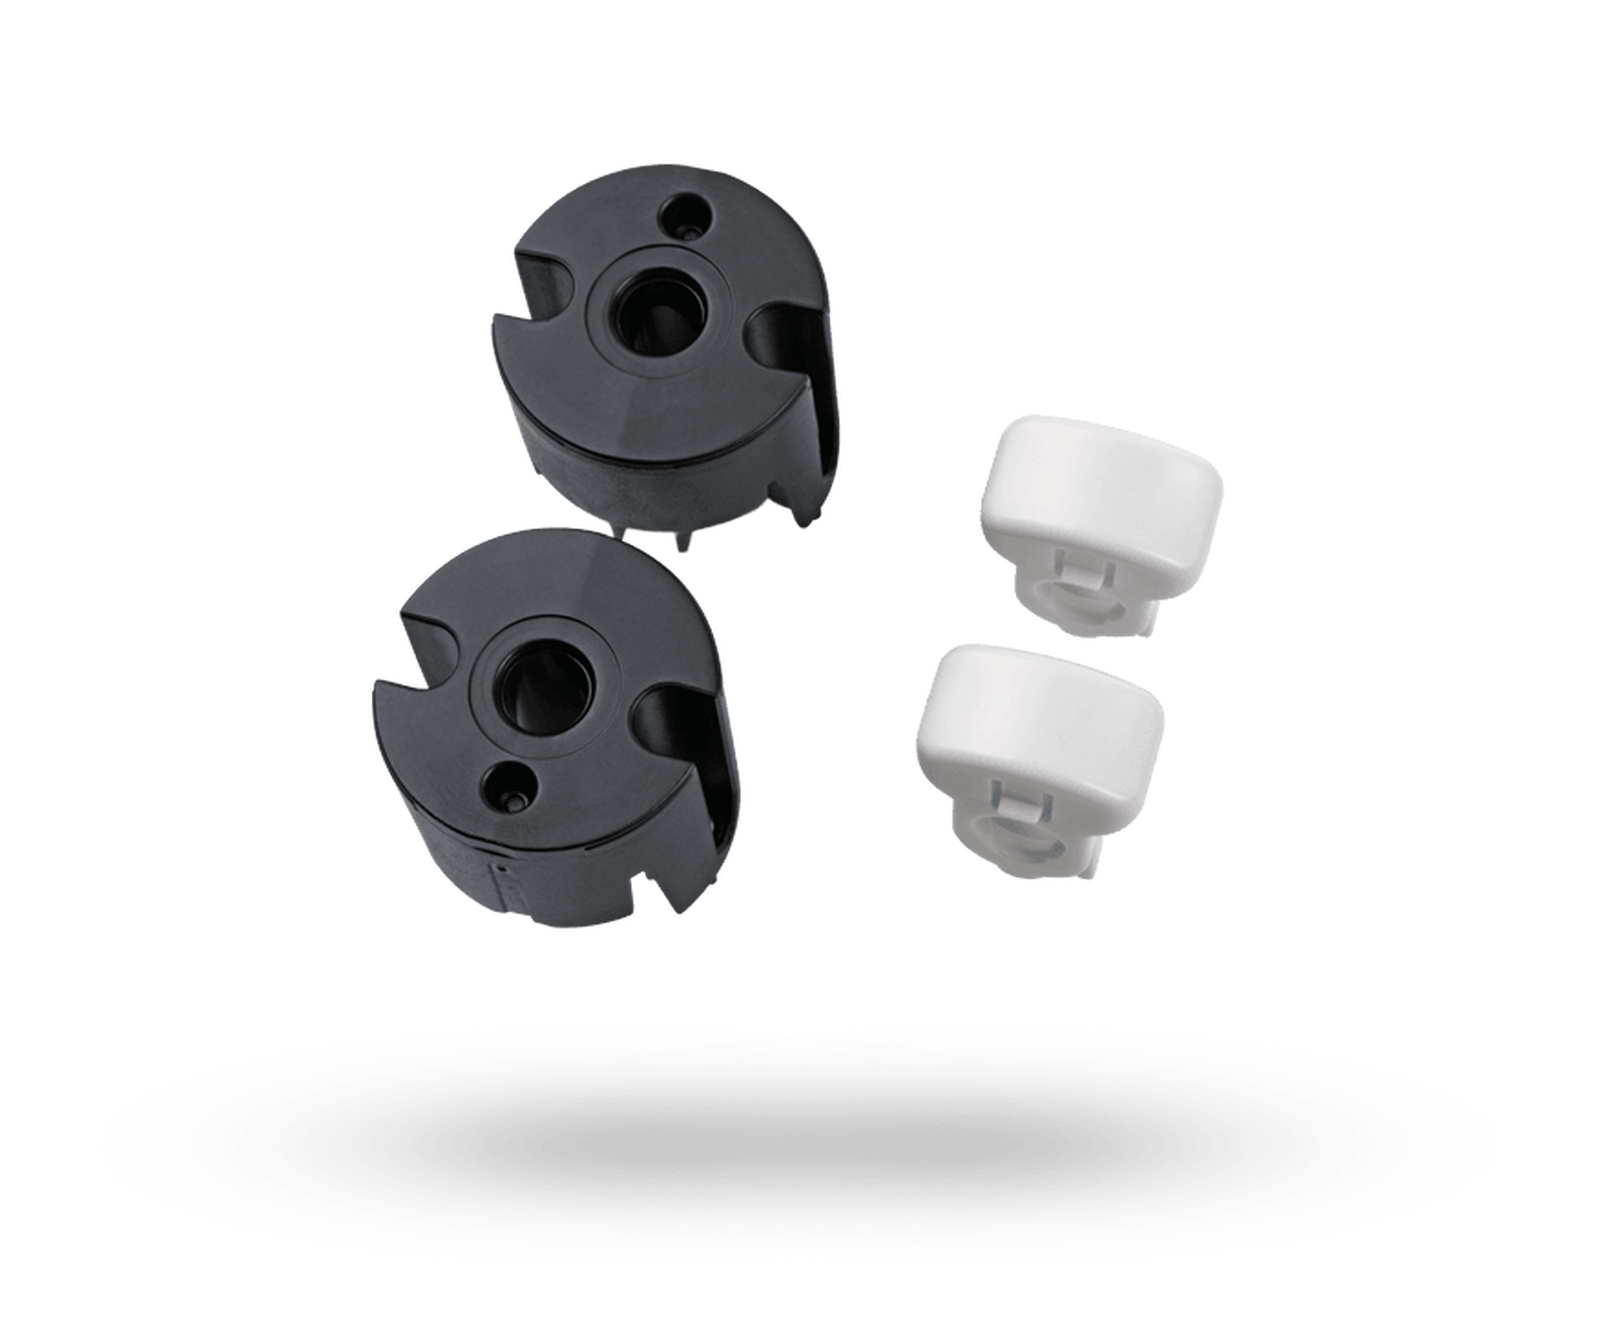 Bugaboo Cameleon 3 swivel wheel lock replacement set